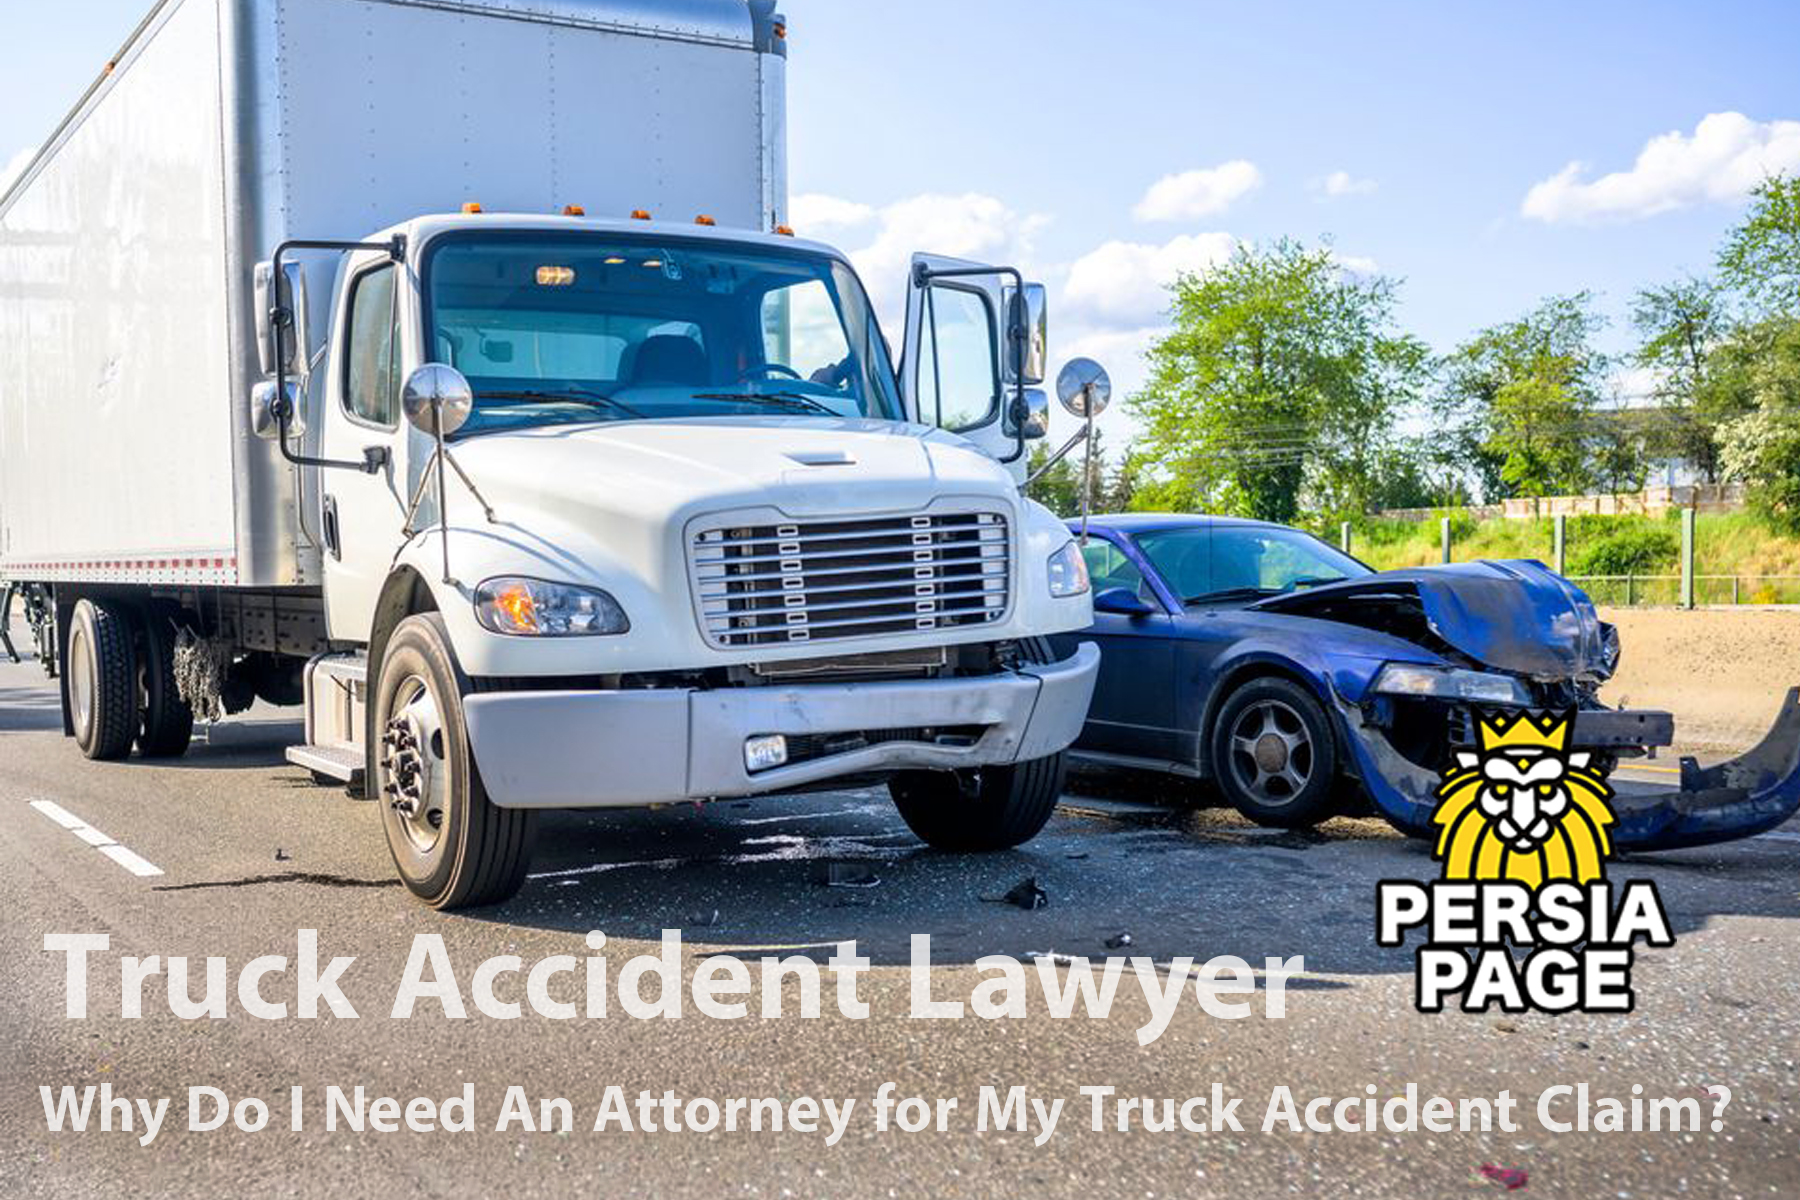 truck accident lawyer near me